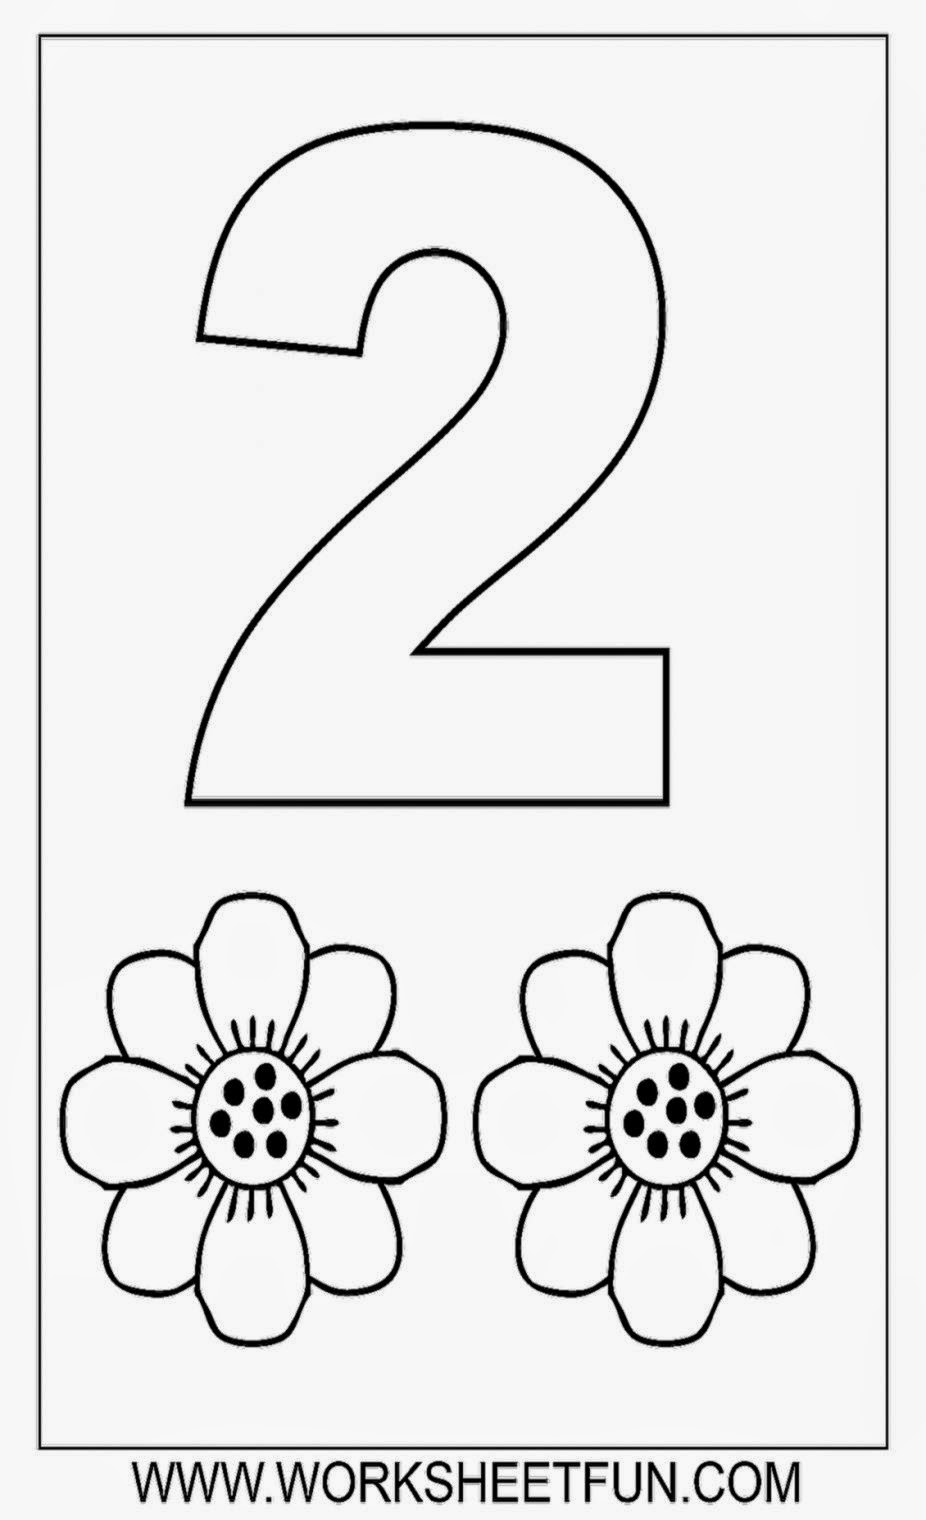 Printable color by number sheets free coloring sheet for Printable color by number pages for kids